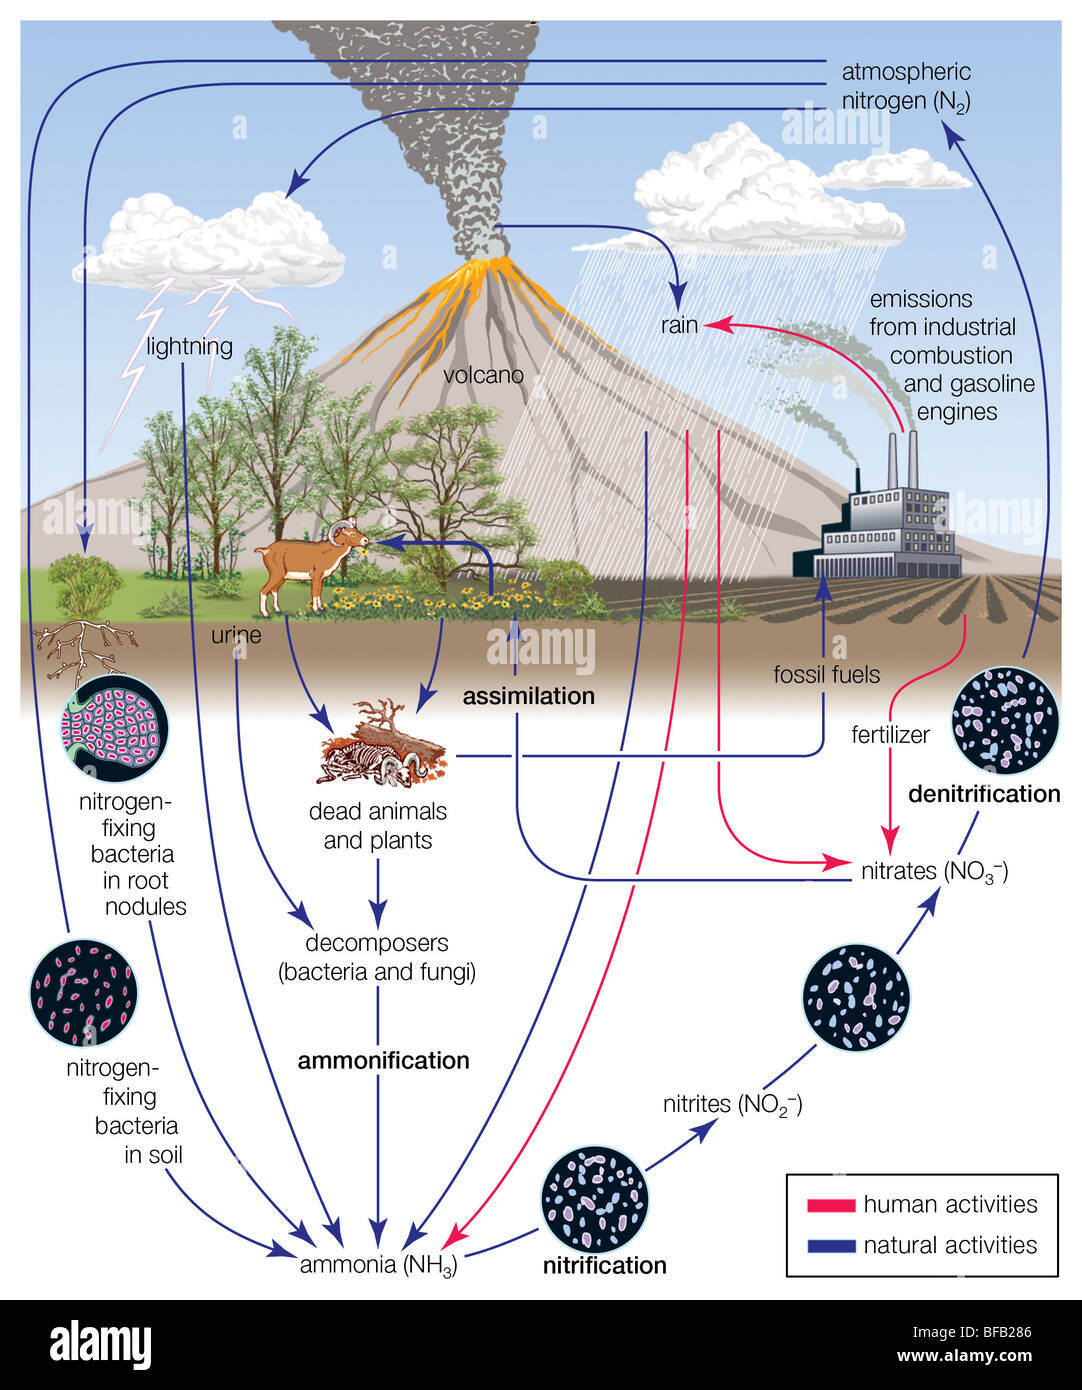 nitrogen cycle stock photos & nitrogen cycle stock images - alamy